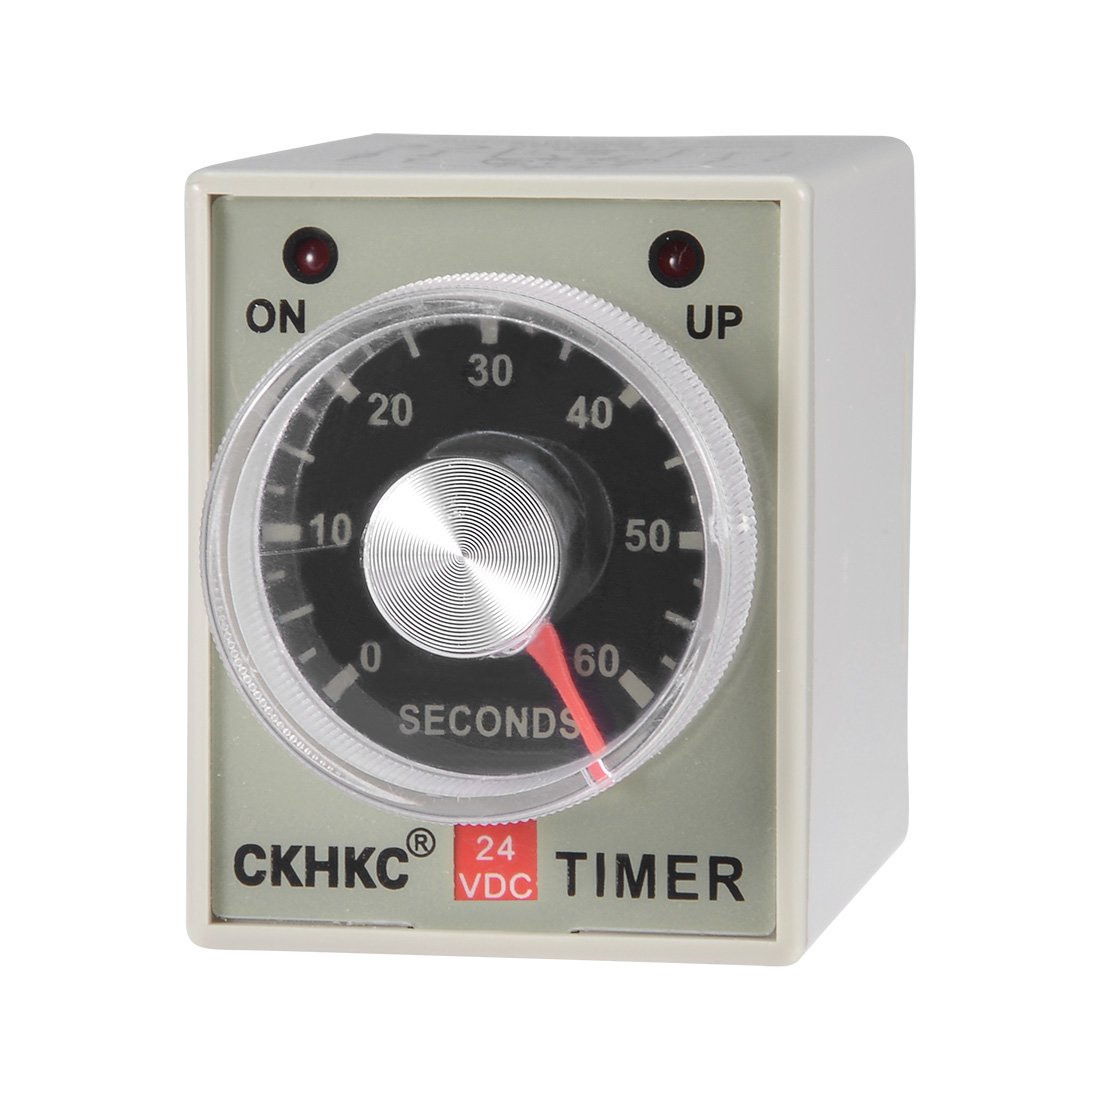 uxcell DC 24V 10M 8 Terminals Range Adjustable Delay Timer Time Relay AH3-3 a18031500ux0149